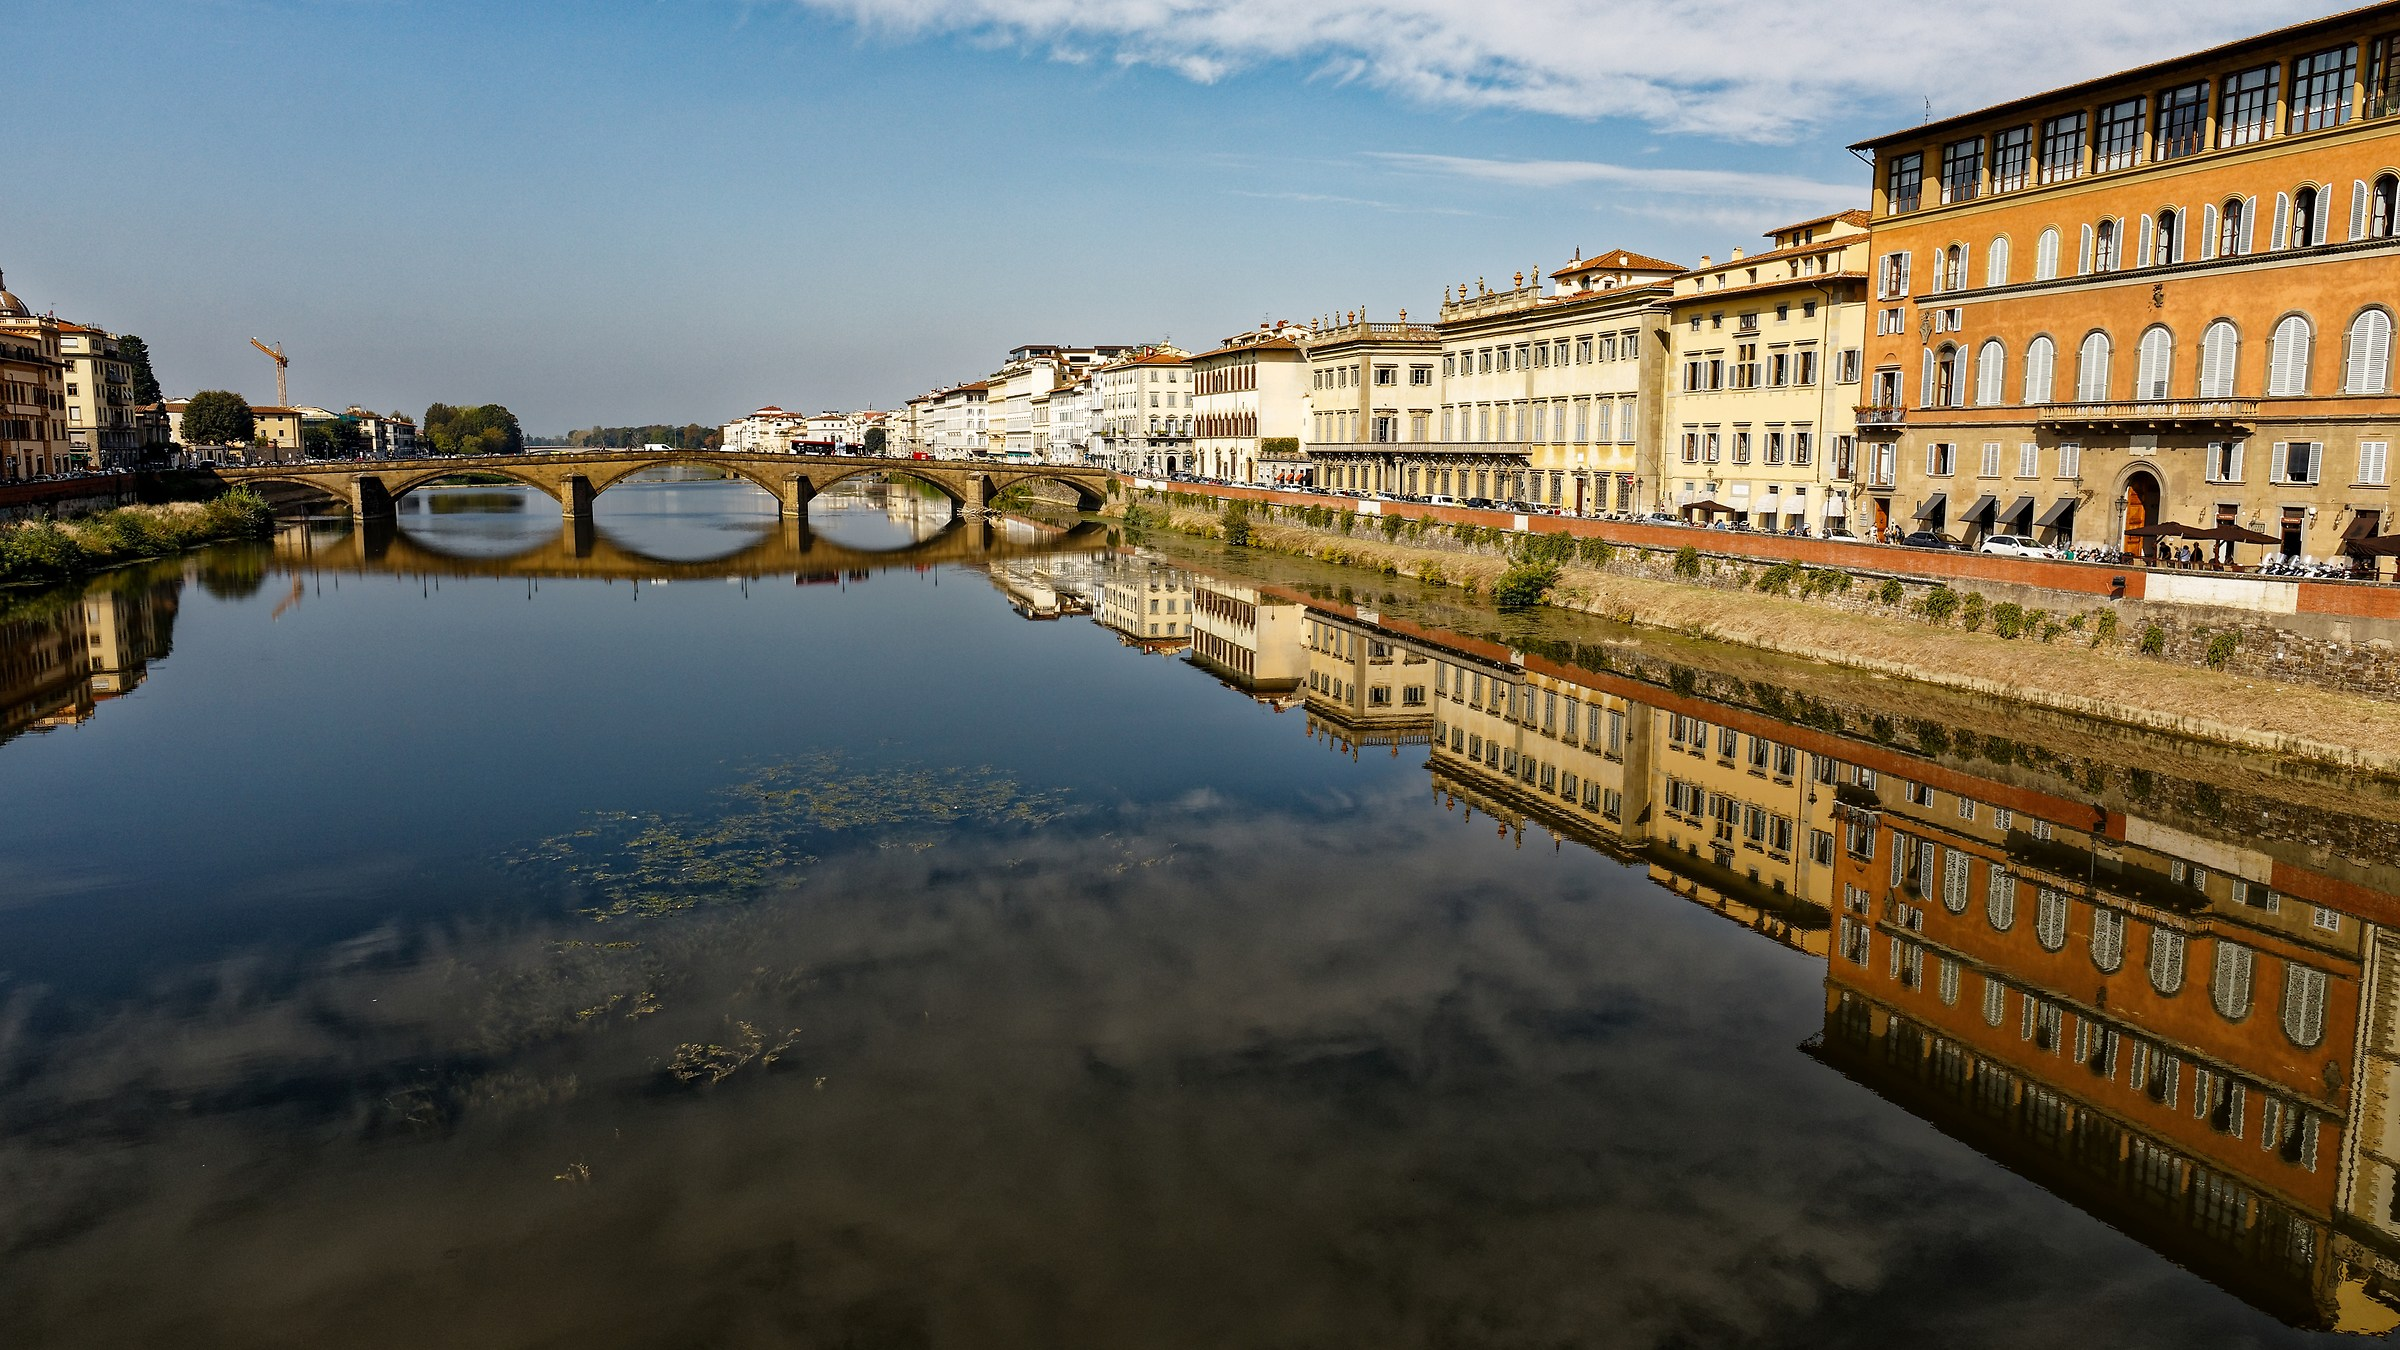 Reflections on the Arno...